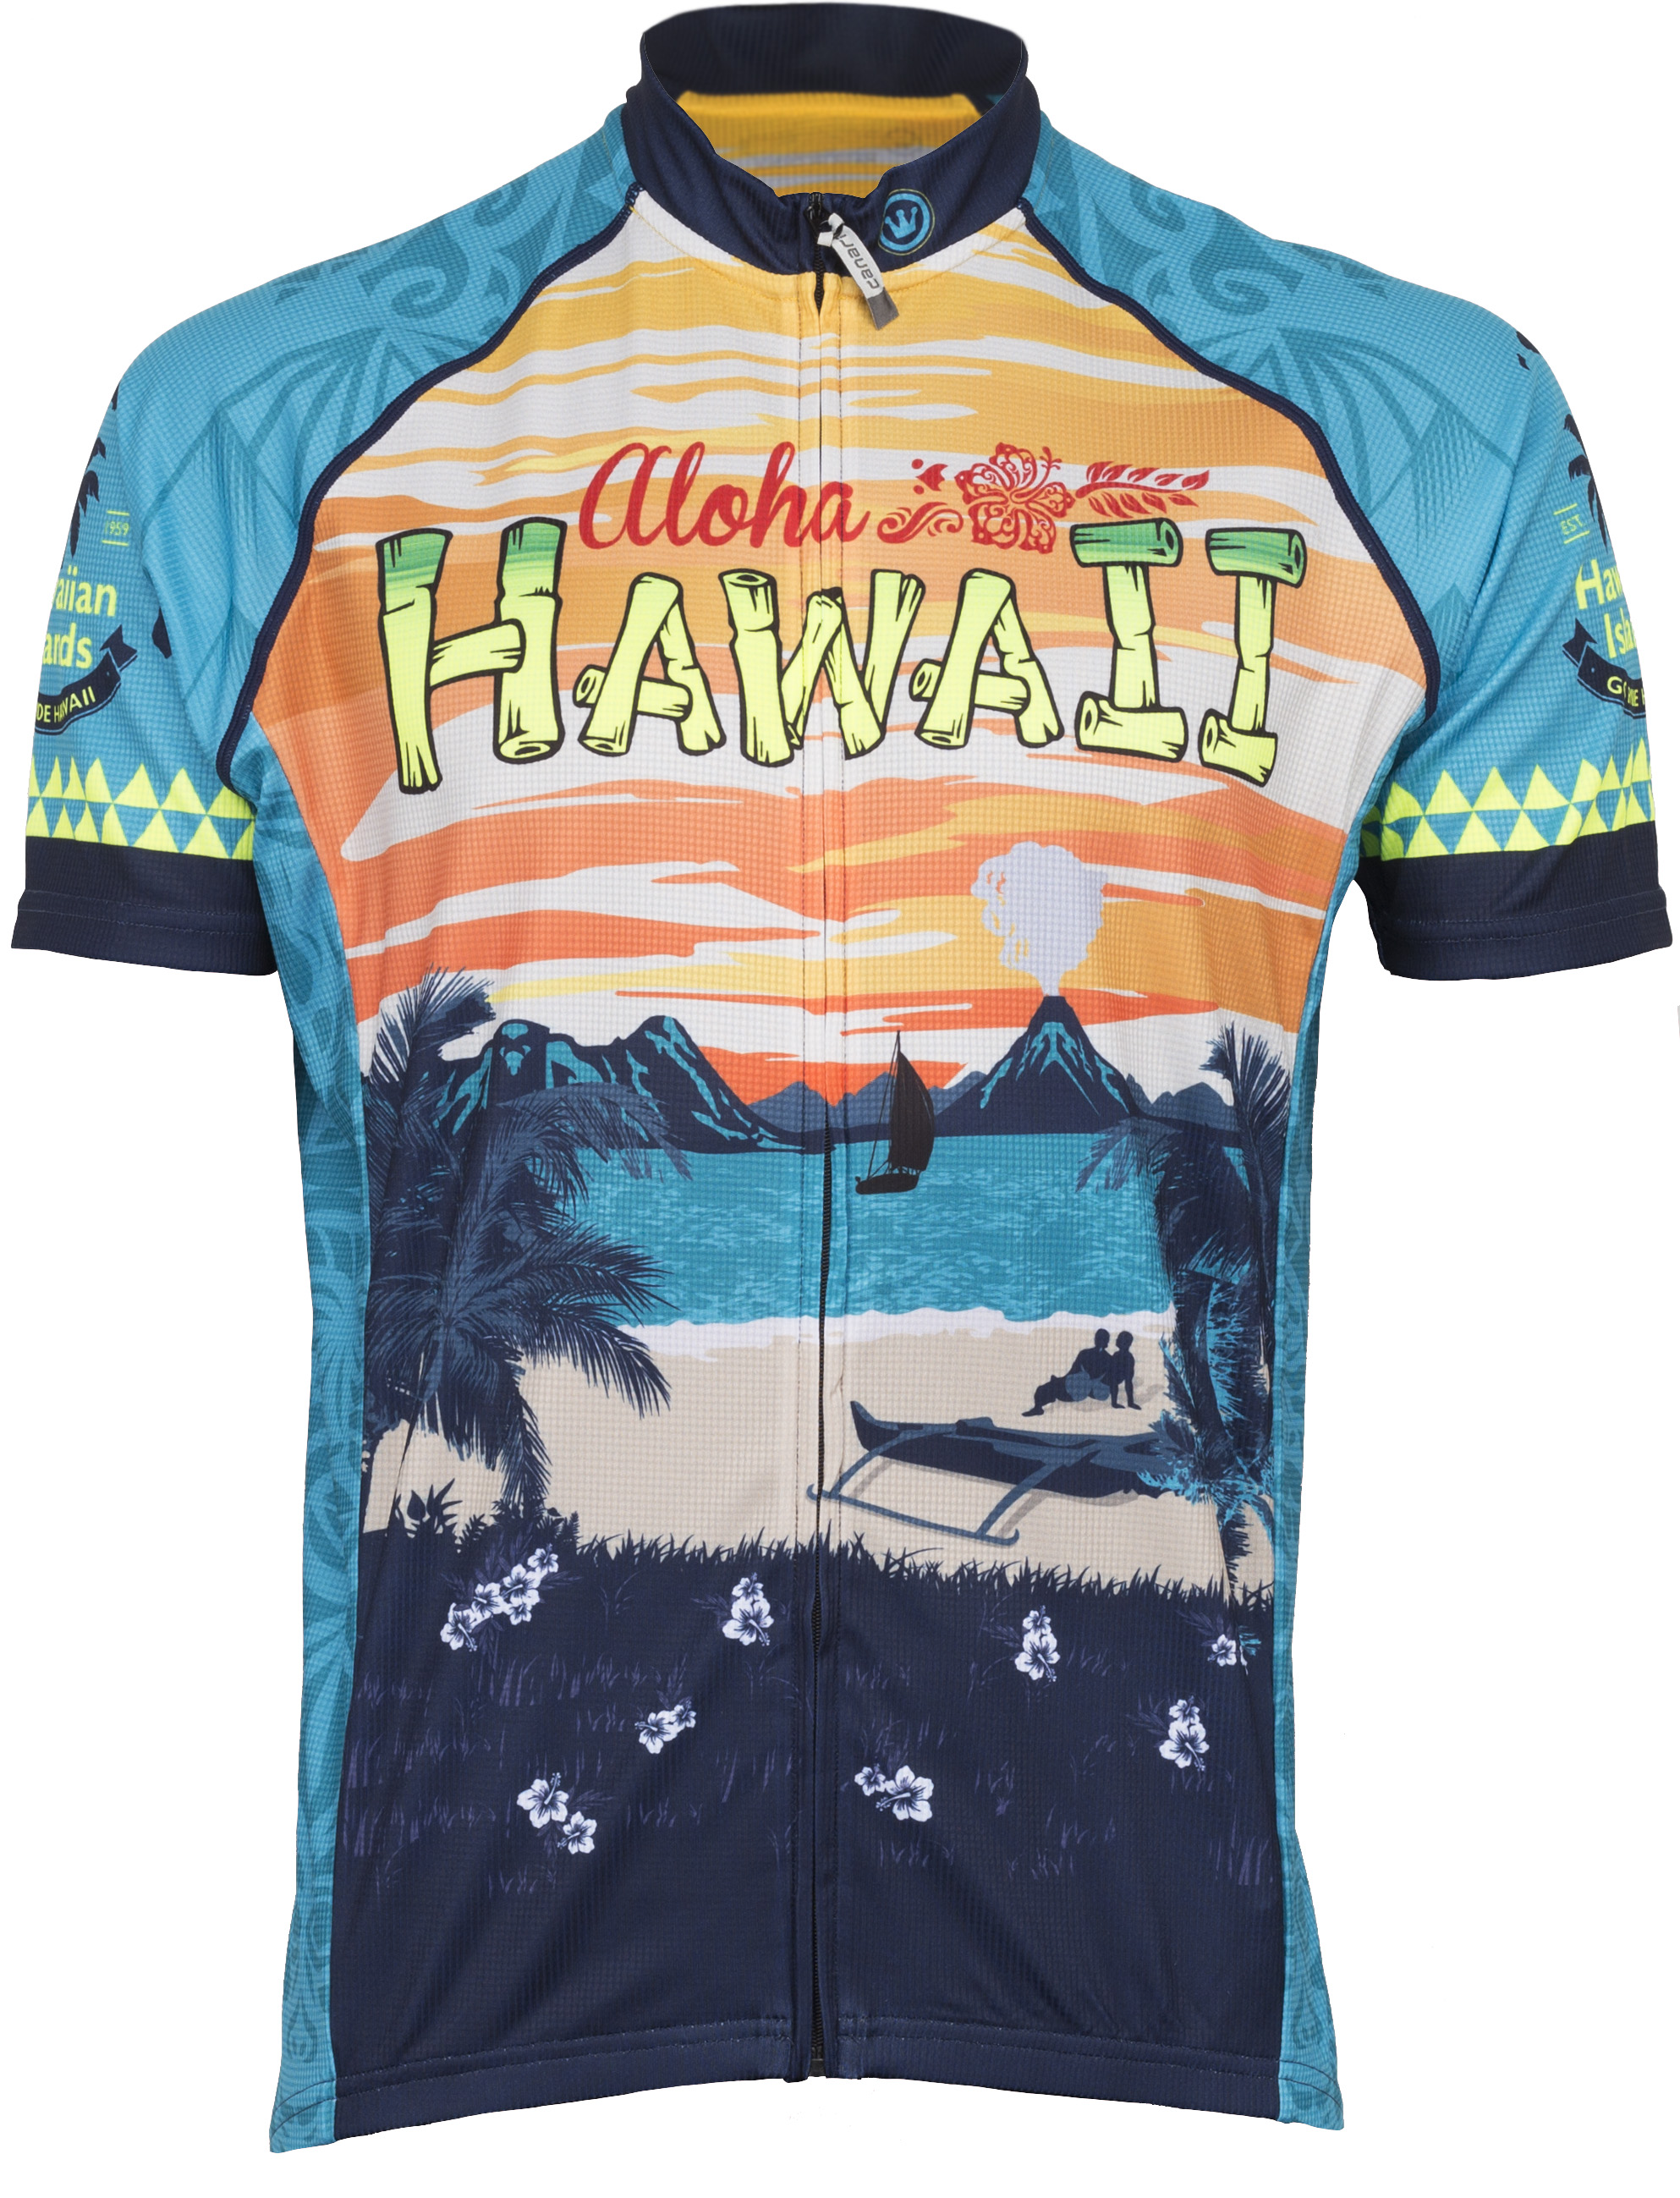 Retro Jerseys Canari Men S Hawaii Retro Jersey